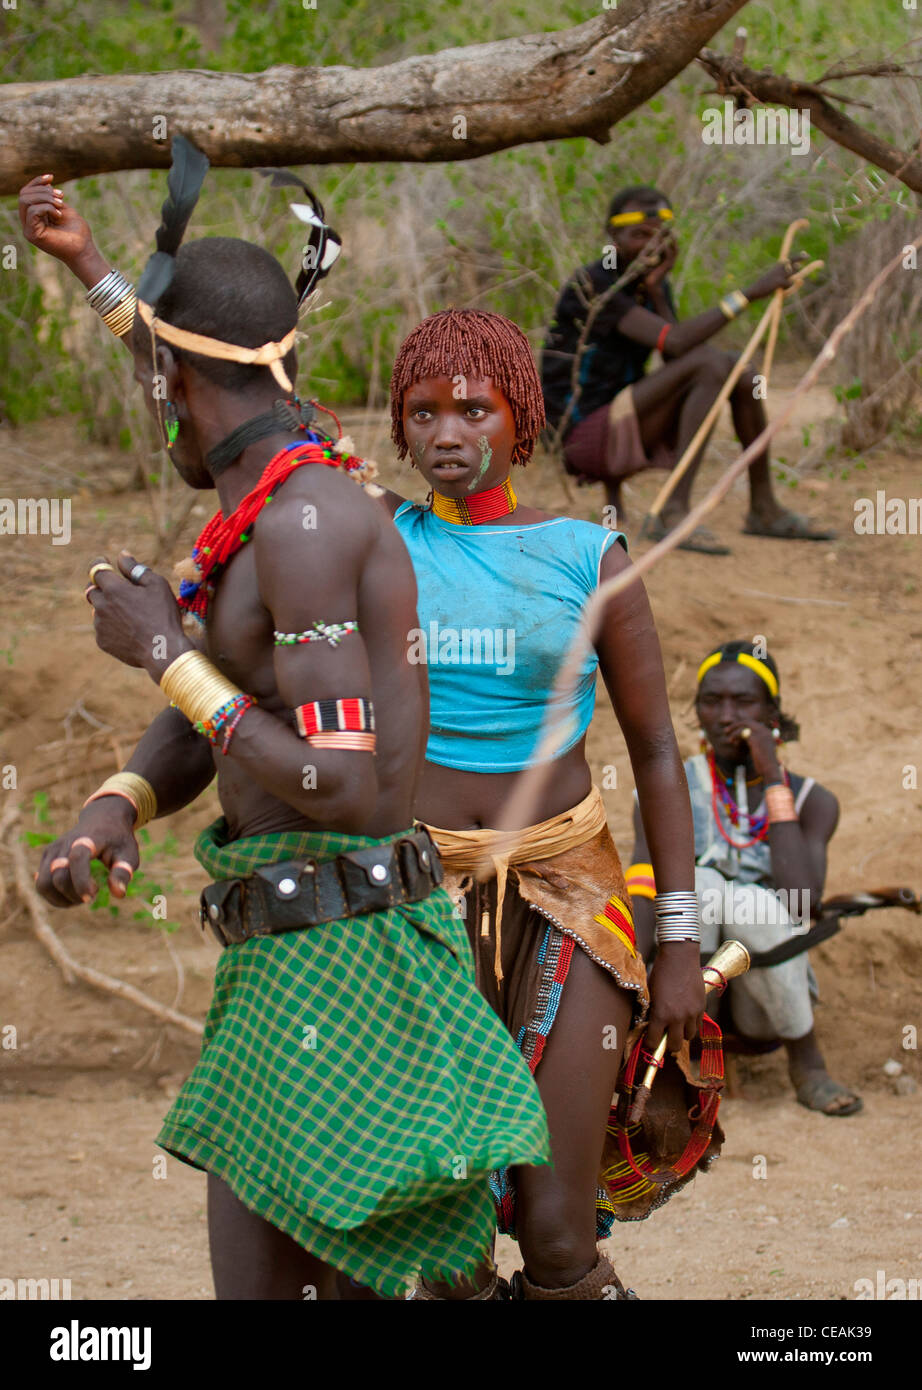 Great Whipper About To Flog Young Hamer Woman Celebrating Bull Jumping Ceremony Ethiopia - Stock Image